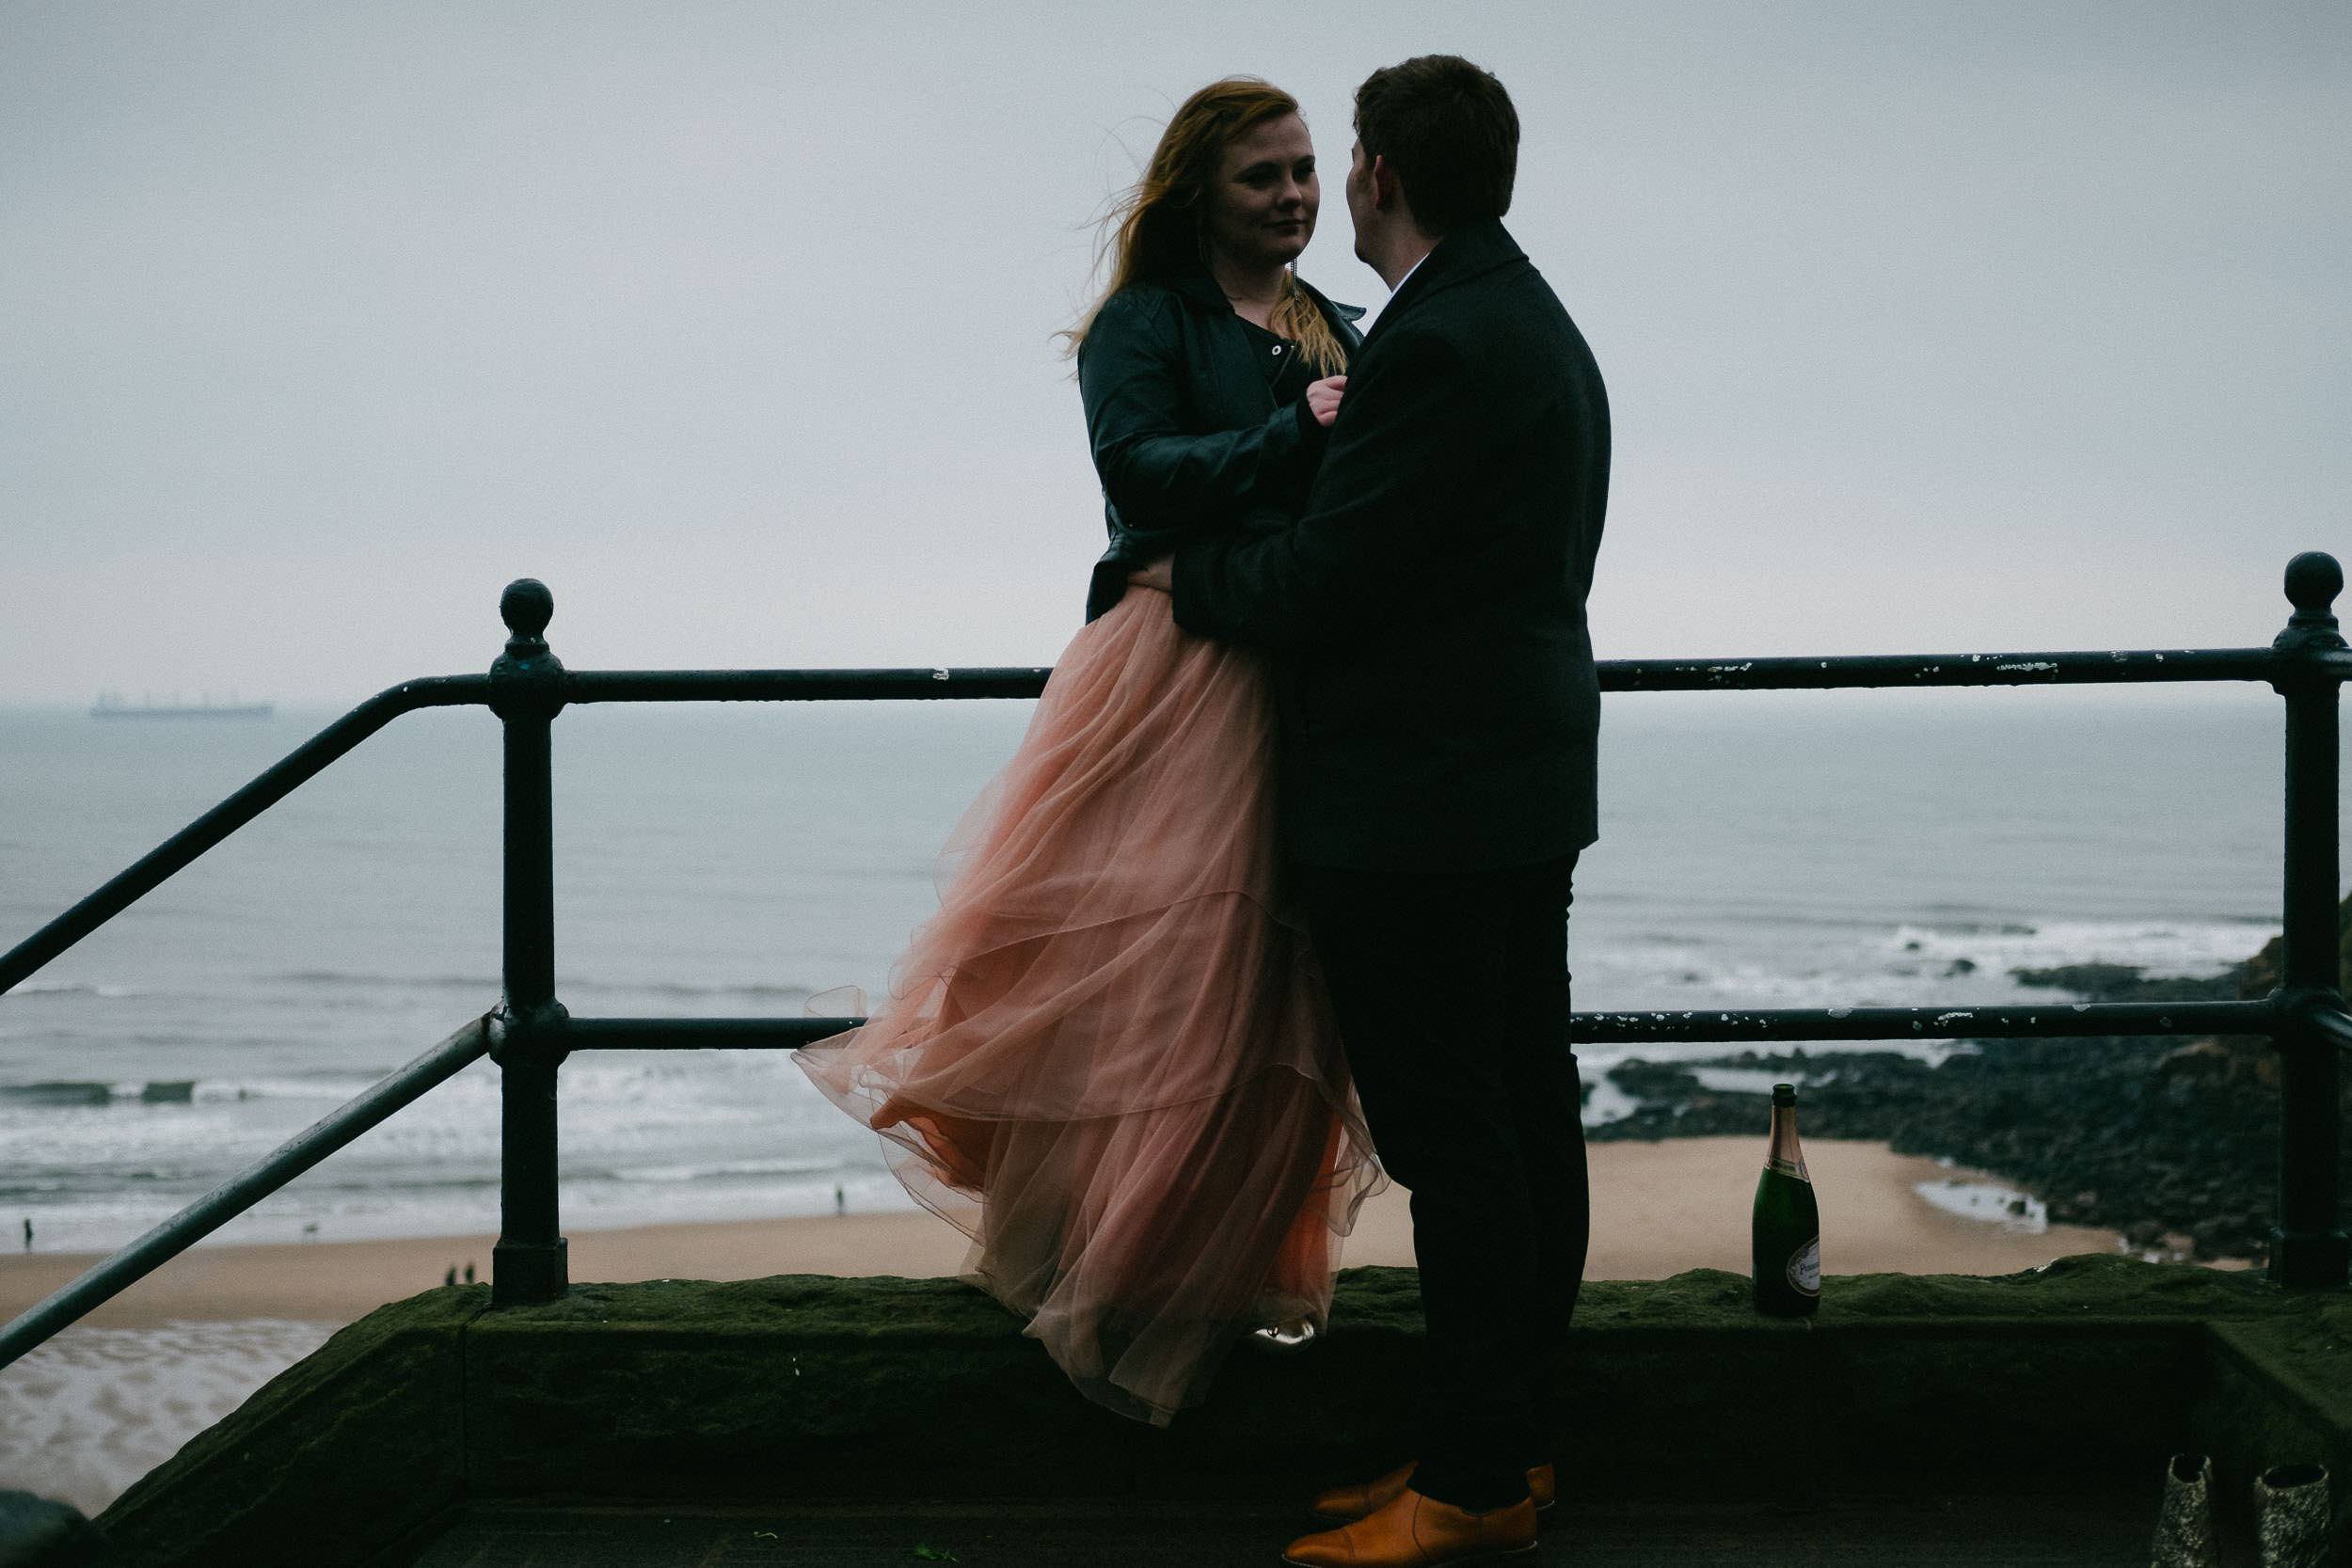 Wind blows girl's dress as couple cuddle at beach